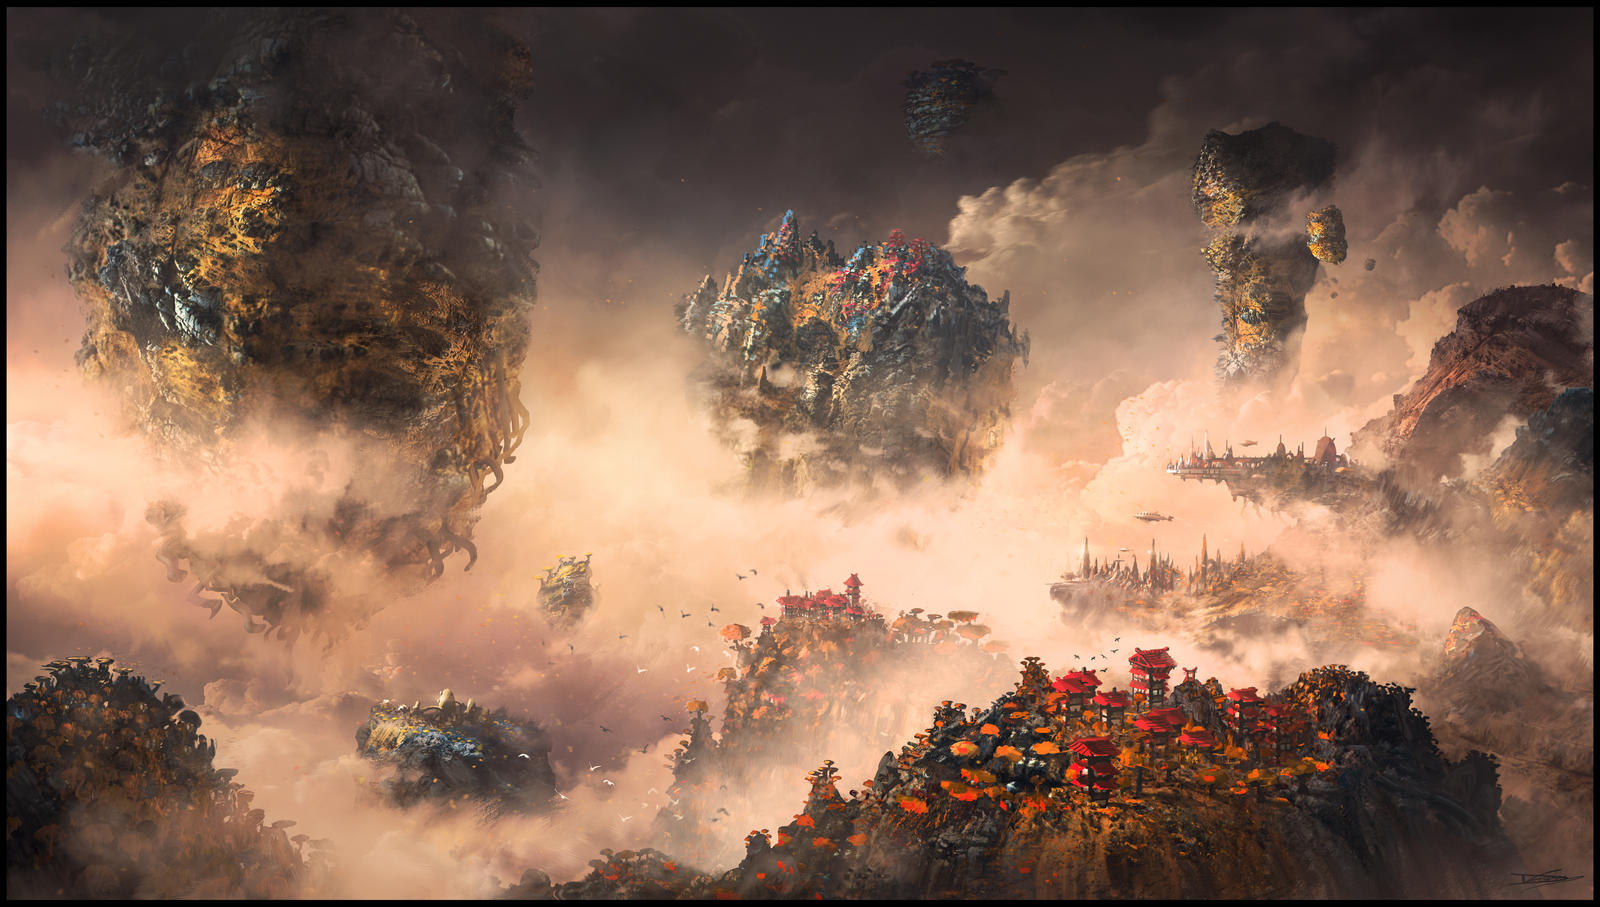 Autumn Isles by DominiquevVelsen